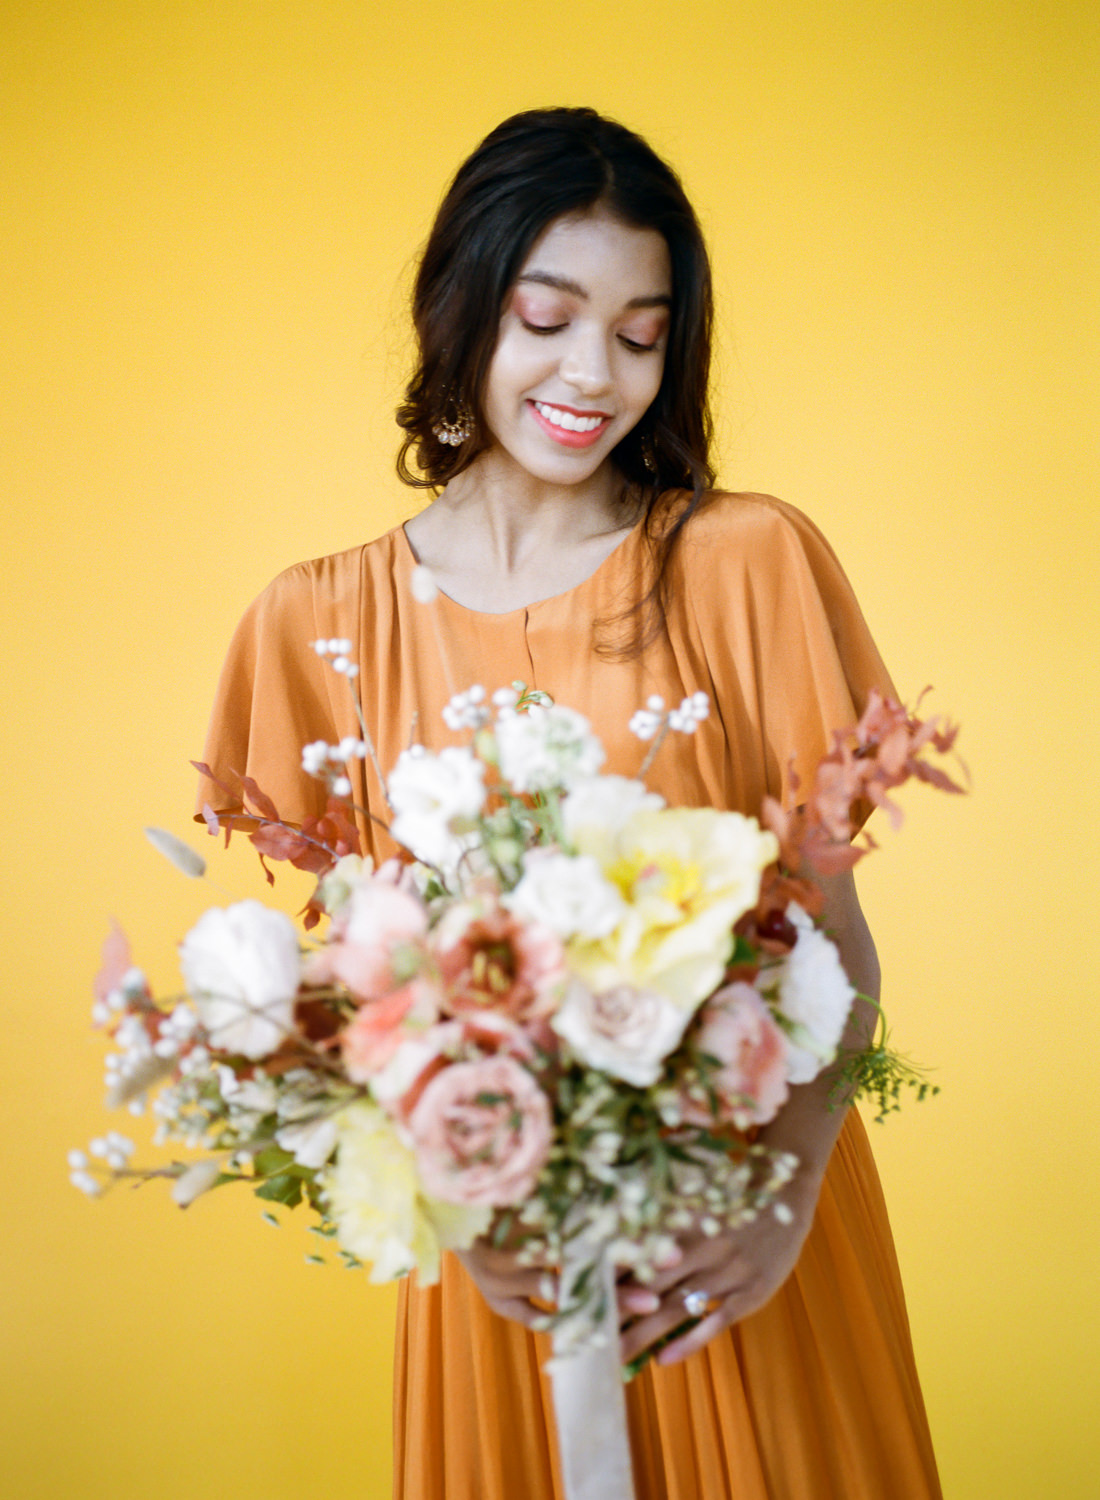 Orange Leanne Marshall gown and peach and pink bridal bouquet; St. Louis Wedding Photographer Erica Robnett Photography